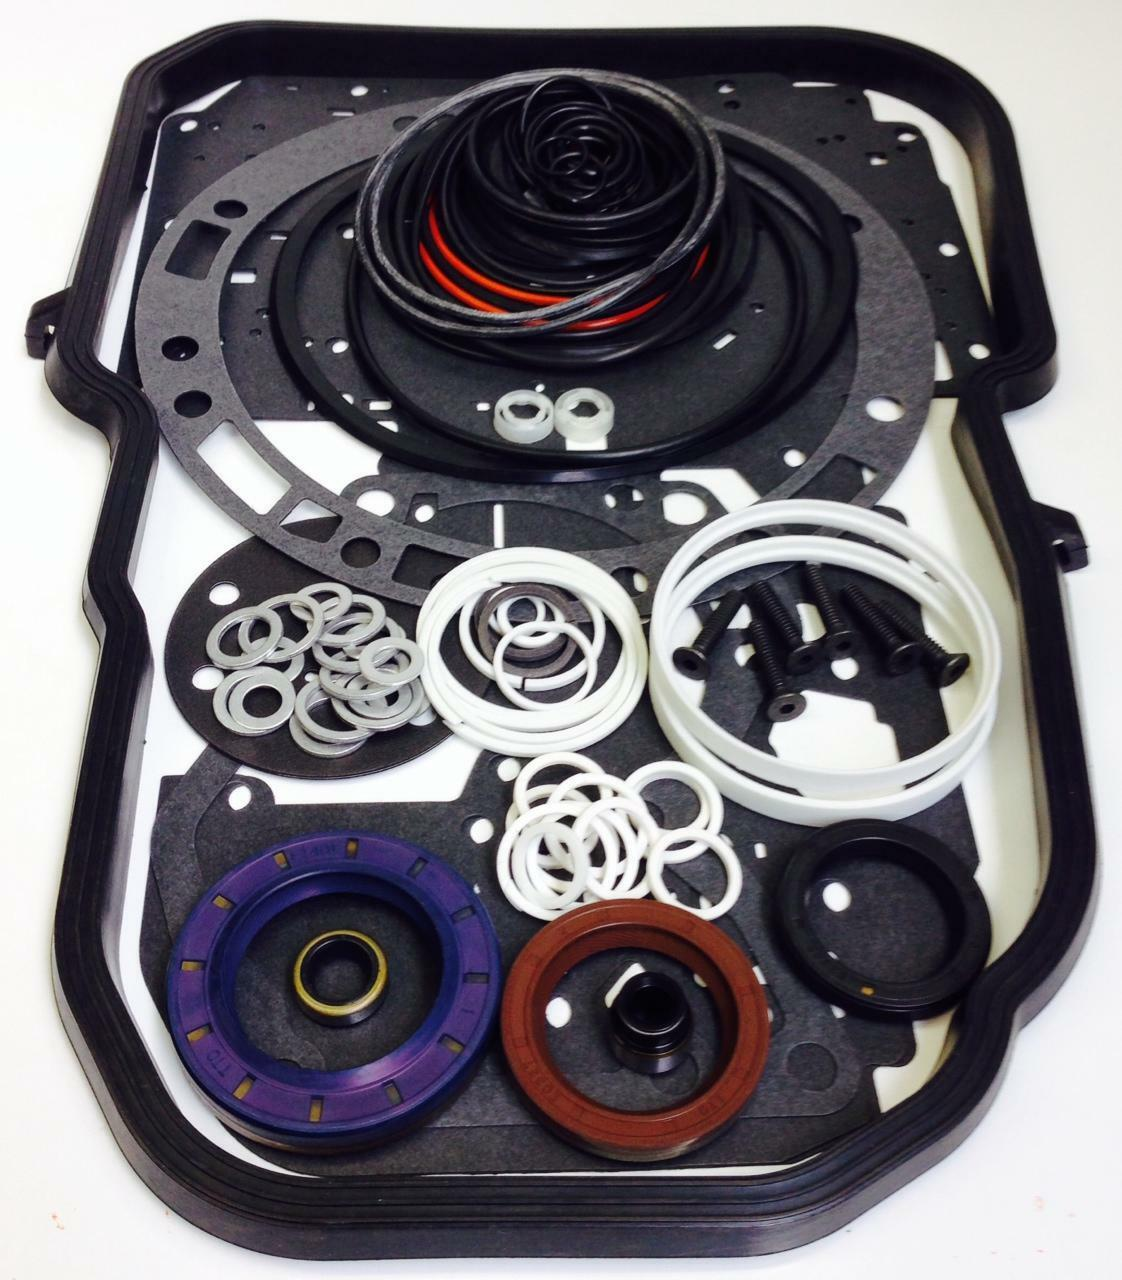 Mercedes 7224 4 Speed Automatic Transmission Gasket Seal Rebuild Saturn Vue 1 Of 1only Available